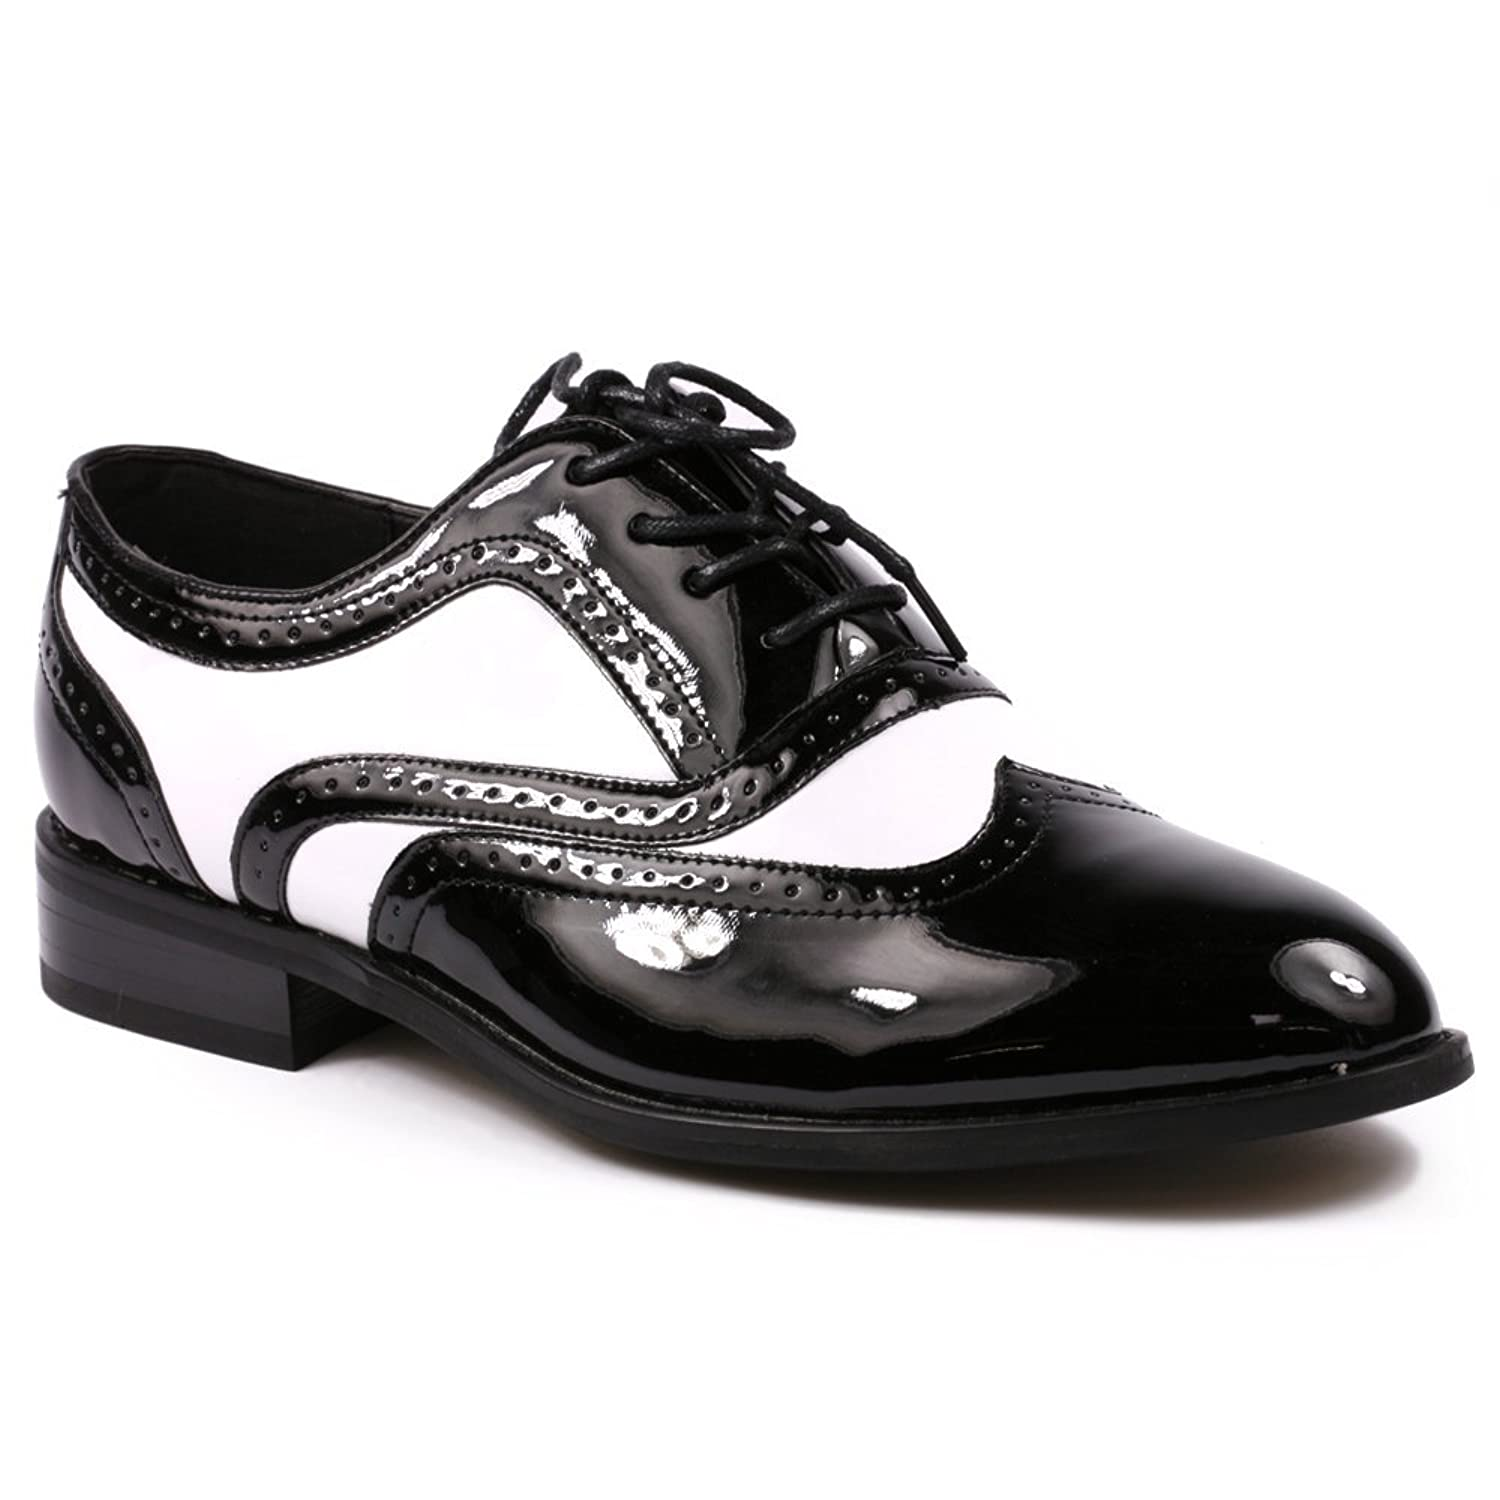 1920s Style Mens Shoes | Peaky Blinders Boots Mens Black White Patent Tuxedo Perforated Wing Tip Lace Up Oxford Dress Shoes RUNS ONE FULL SIZE BIG $38.99 AT vintagedancer.com